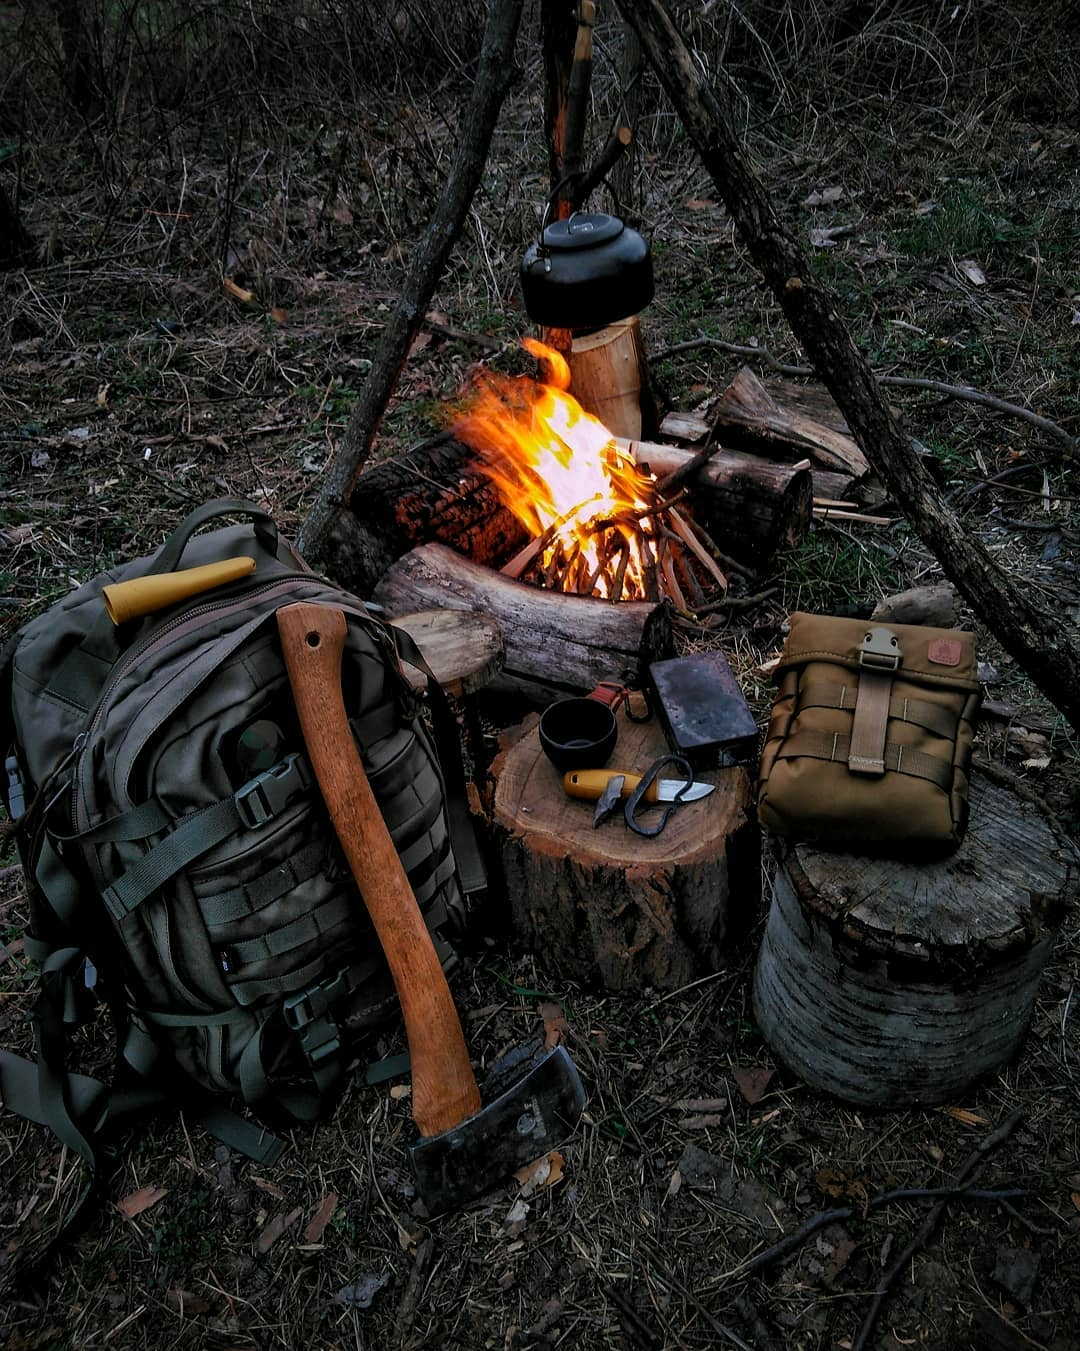 camping gear around fire